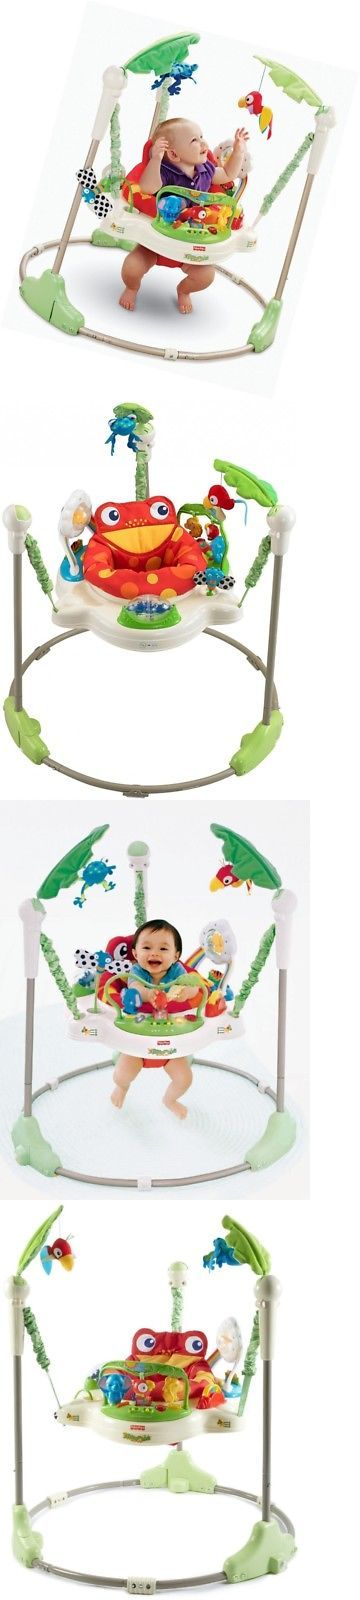 Baby Jumping Exercisers 117032: Fisher-Price Rainforest Baby Infant Chils Jumperoo W Light-Up Musical Piano -> BUY IT NOW ONLY: $109.08 on eBay!